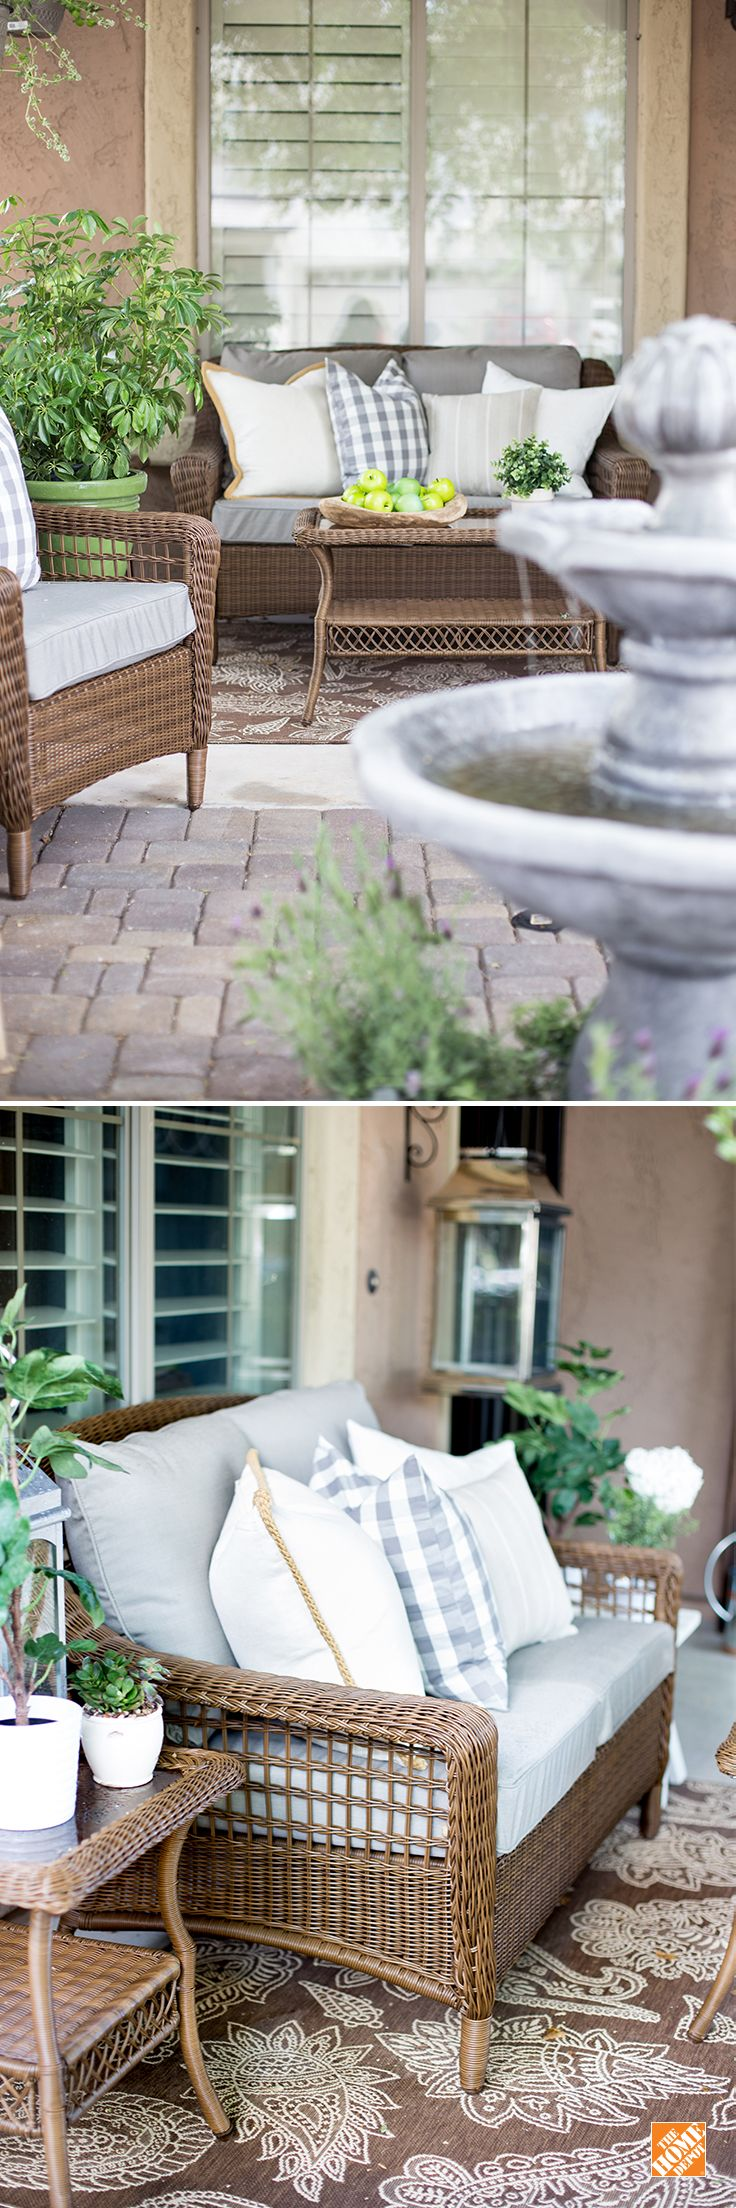 With more than a dozen color options for patio furniture cushions to choose from, it's easy to get exactly the right look for your outdoor space. Here you see that style expert Destiny Alfonso found just the right shade of gray in The Home Depot's Spring Haven patio set  to coordinate with her existing pillows. See more simple decorating ideas for your deck, balcony or porch on The Home Depot Blog.